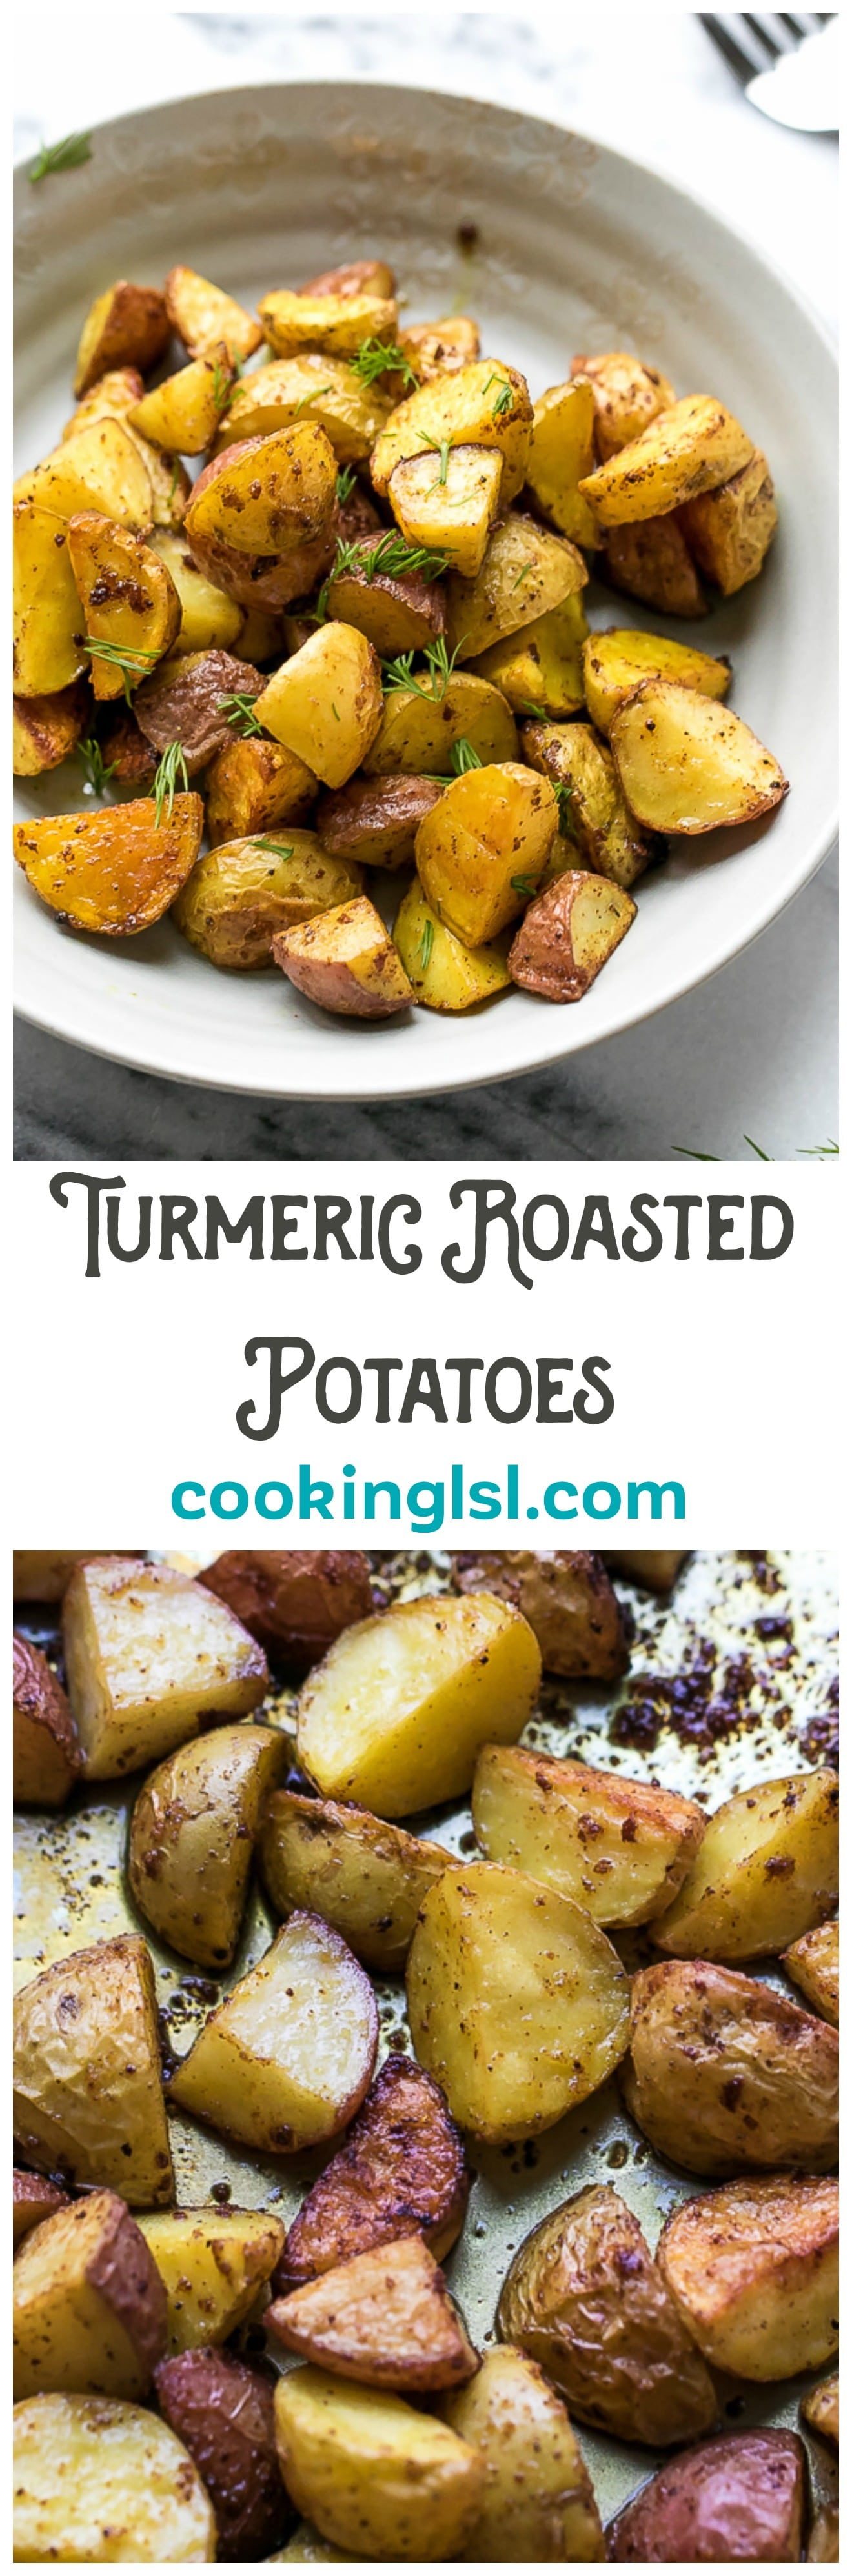 easy turmeric roasted potatoes